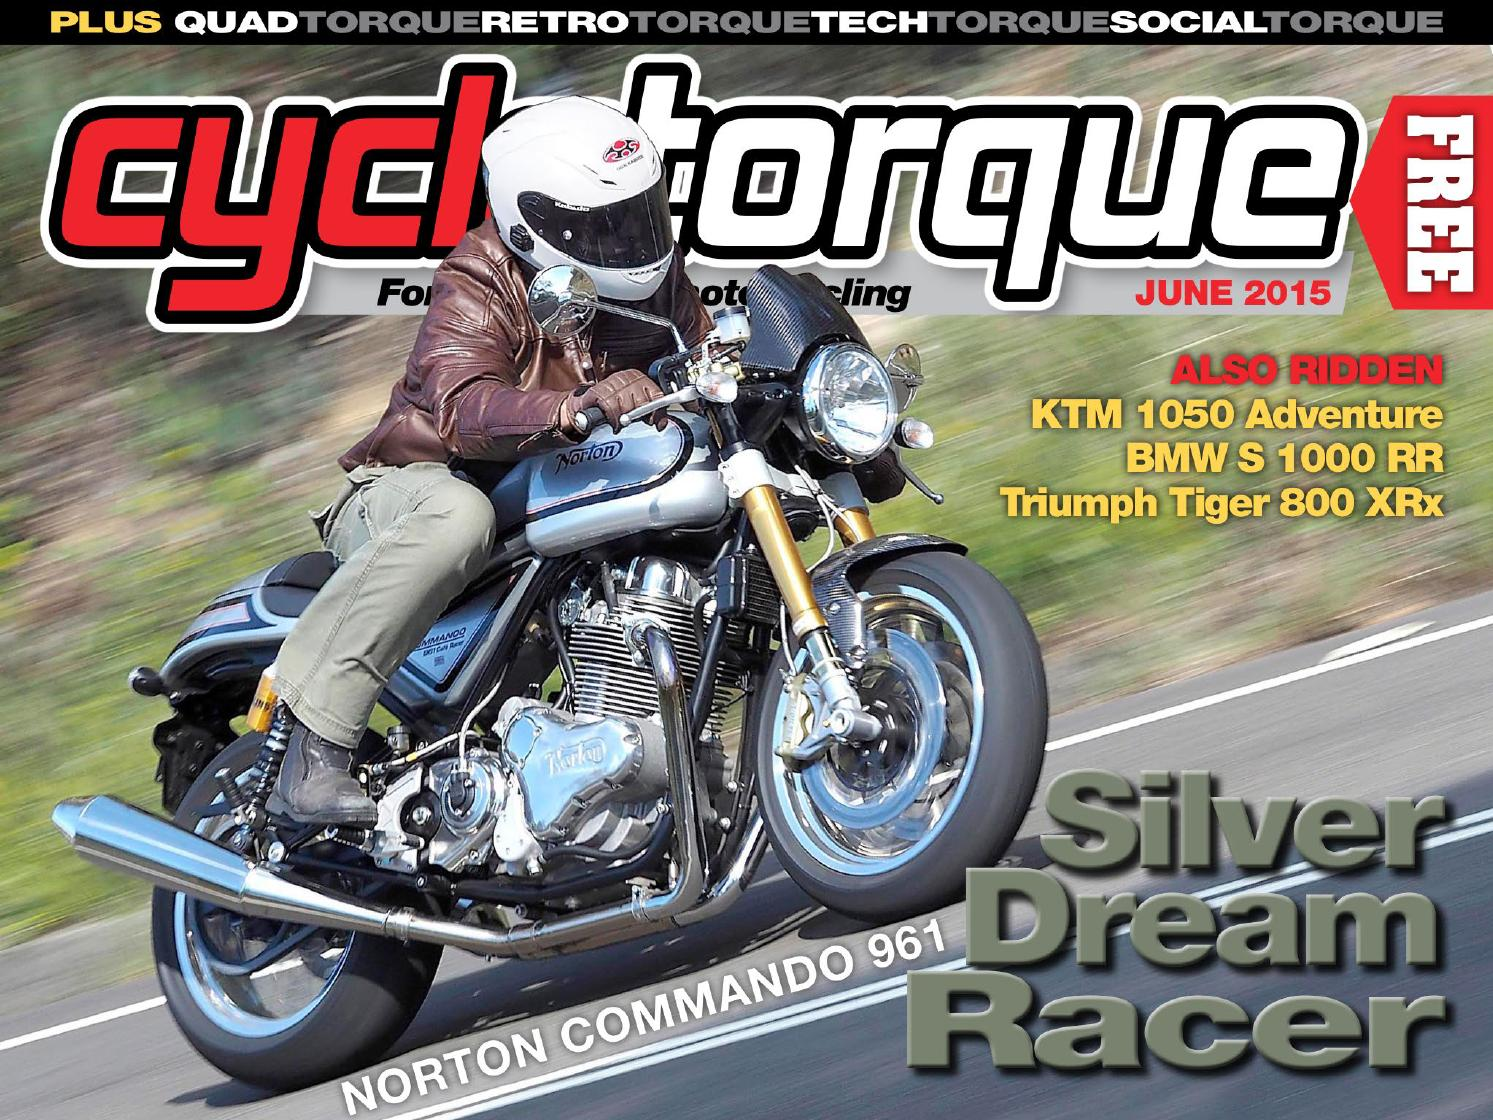 Cycle Torque June 2015 by Cycle Torque - issuu